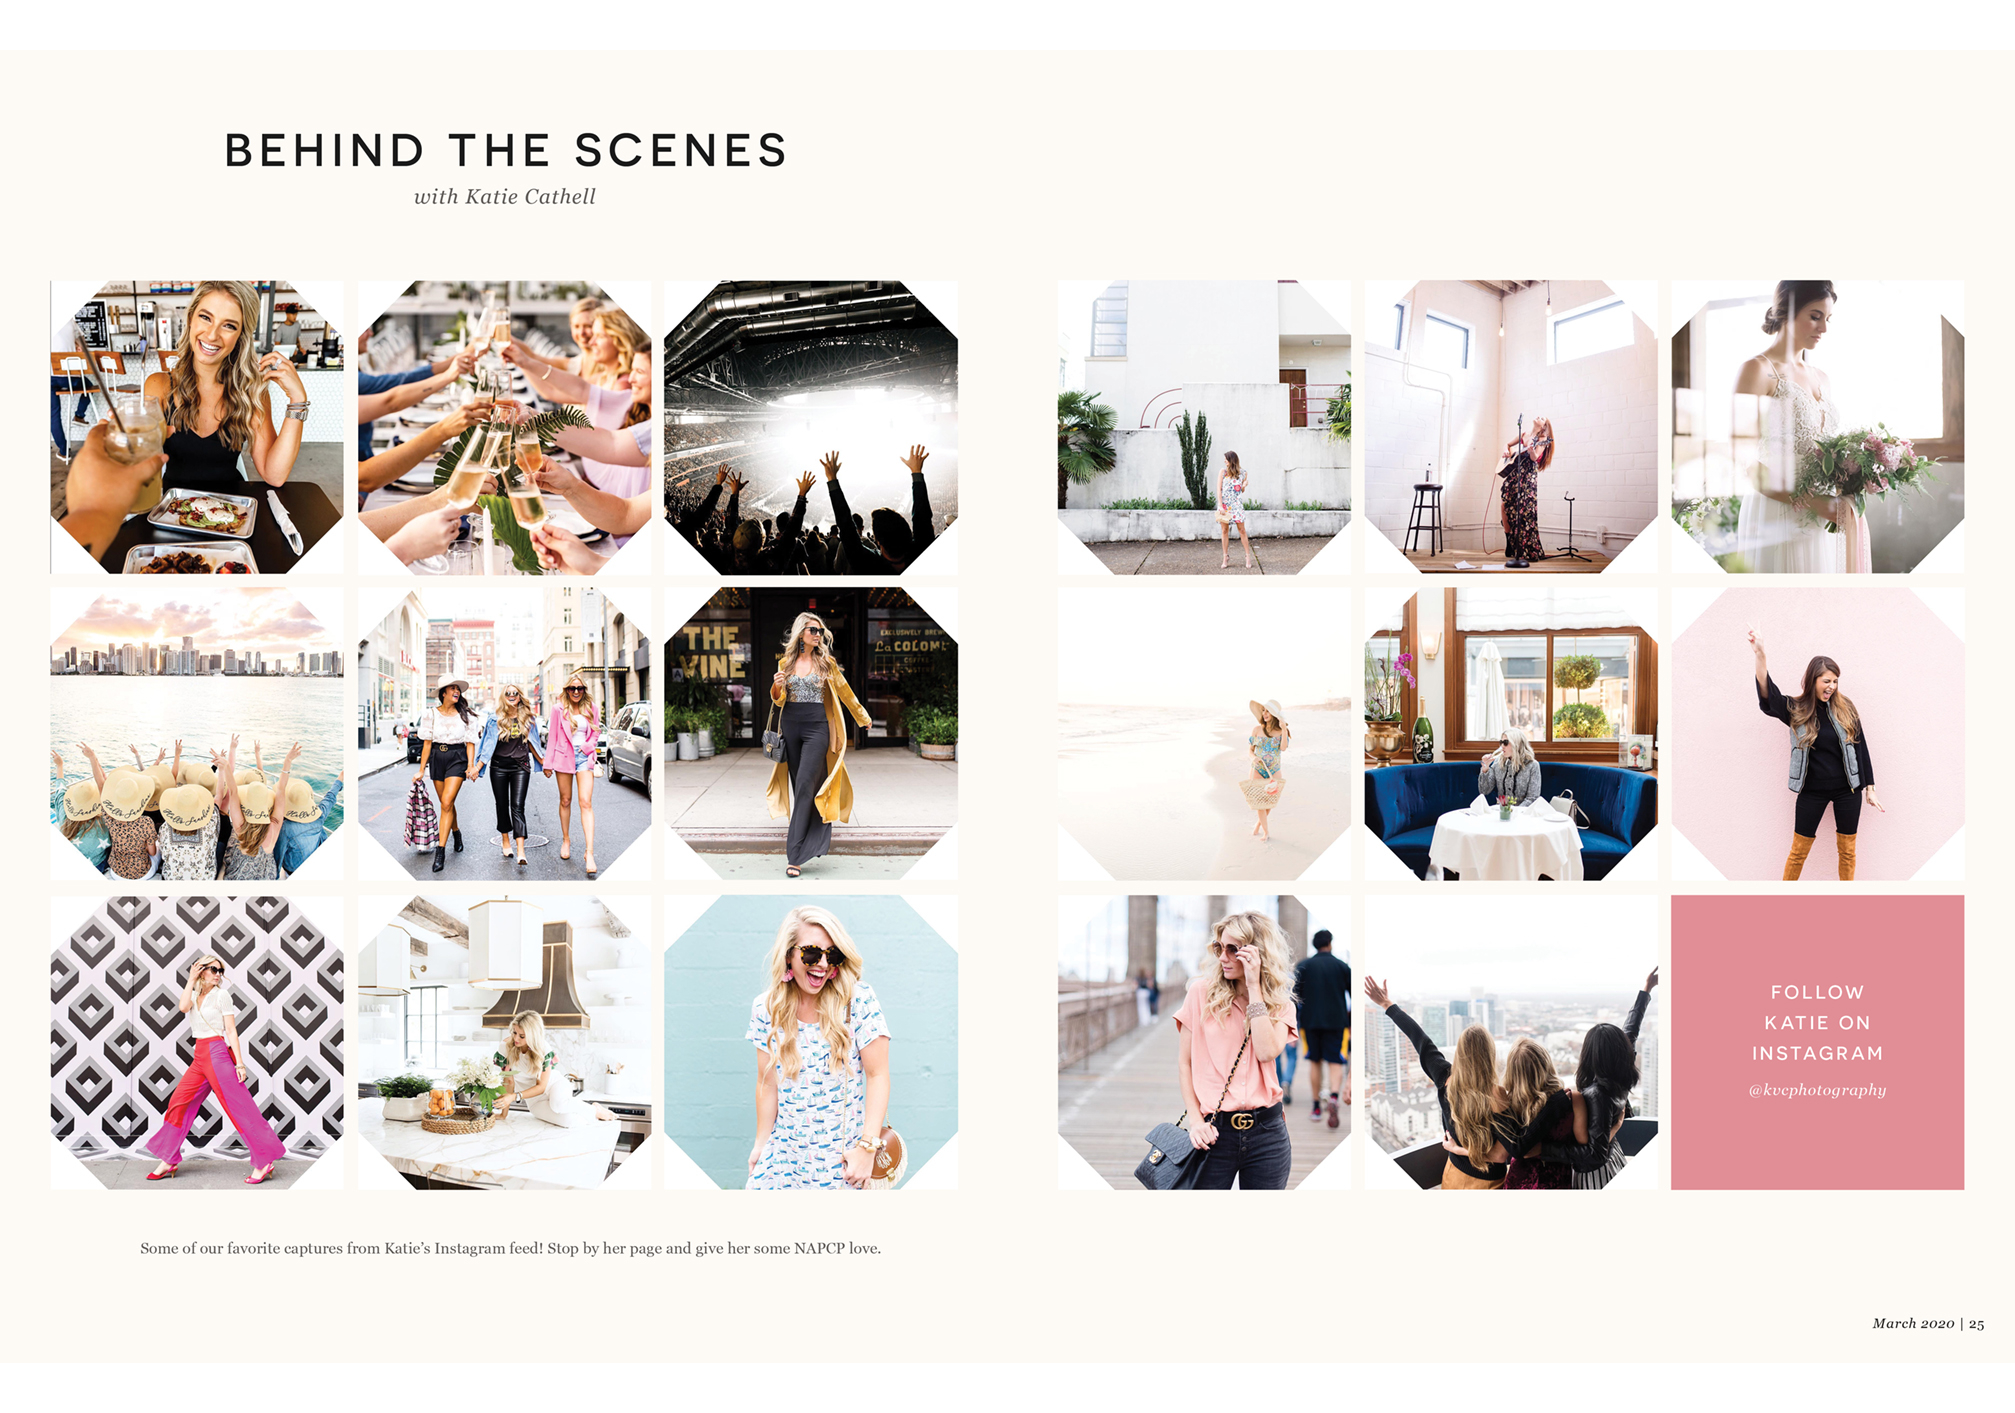 Behind the Scenes with Katie Cathell, Katie Cathell Instagram